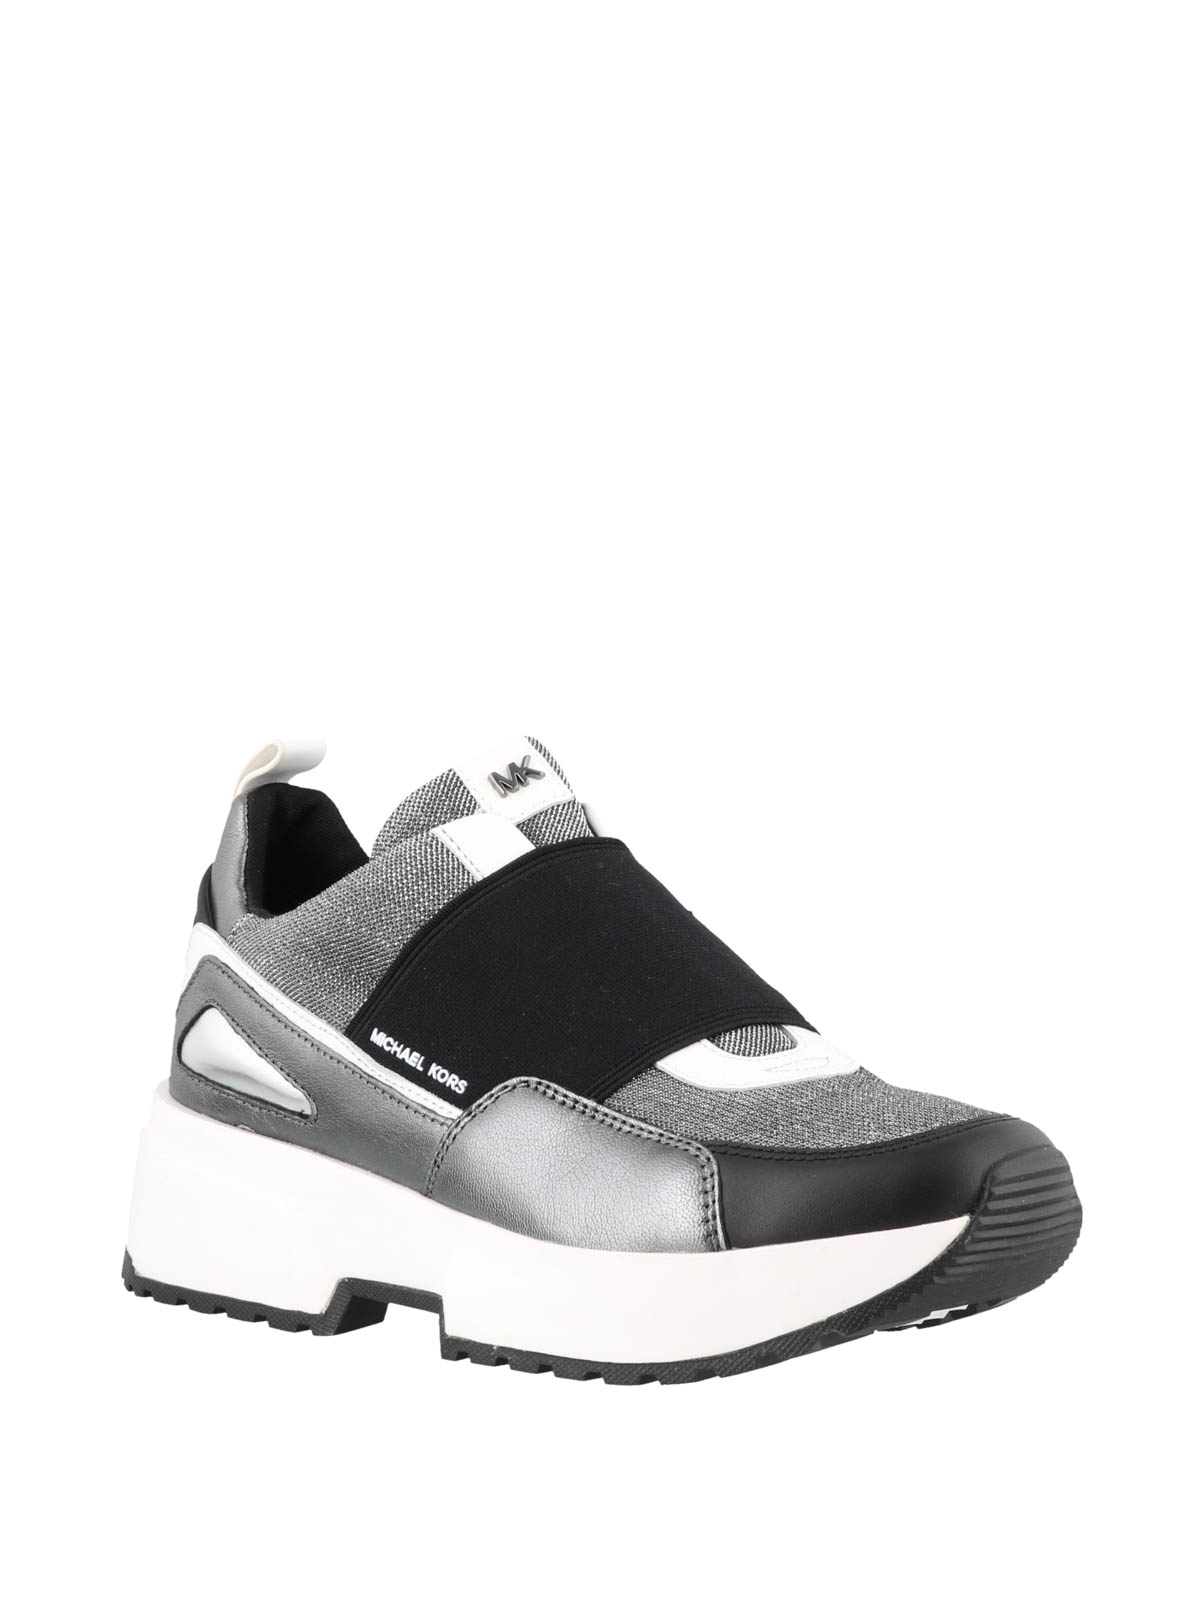 Michael Kors Cosmo silver slip on sneakers trainers